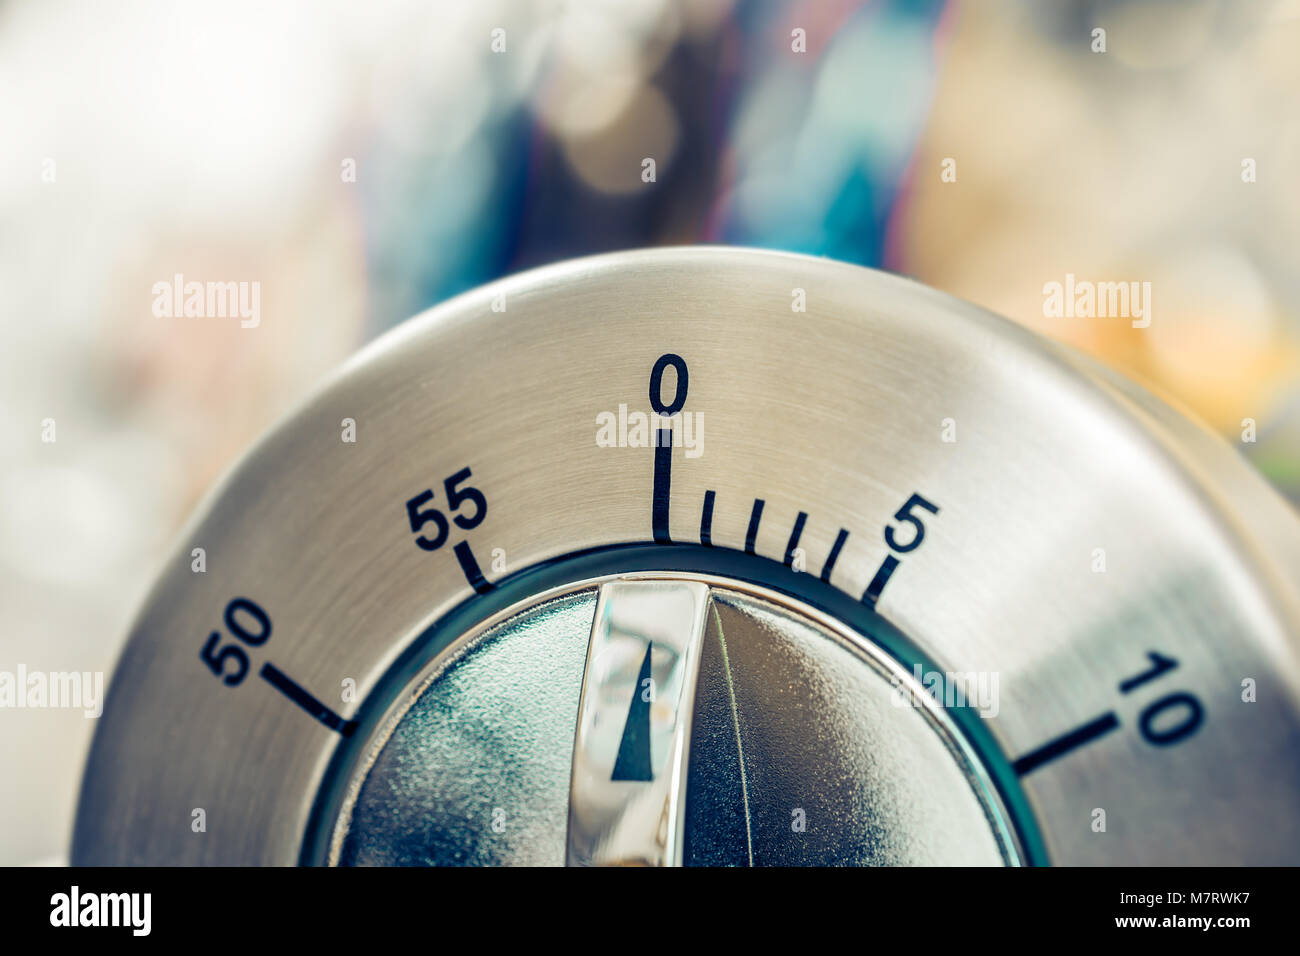 0 Minutes / 1 Hour - Macro Of An Analog Chrome Kitchen Timer - Stock Image